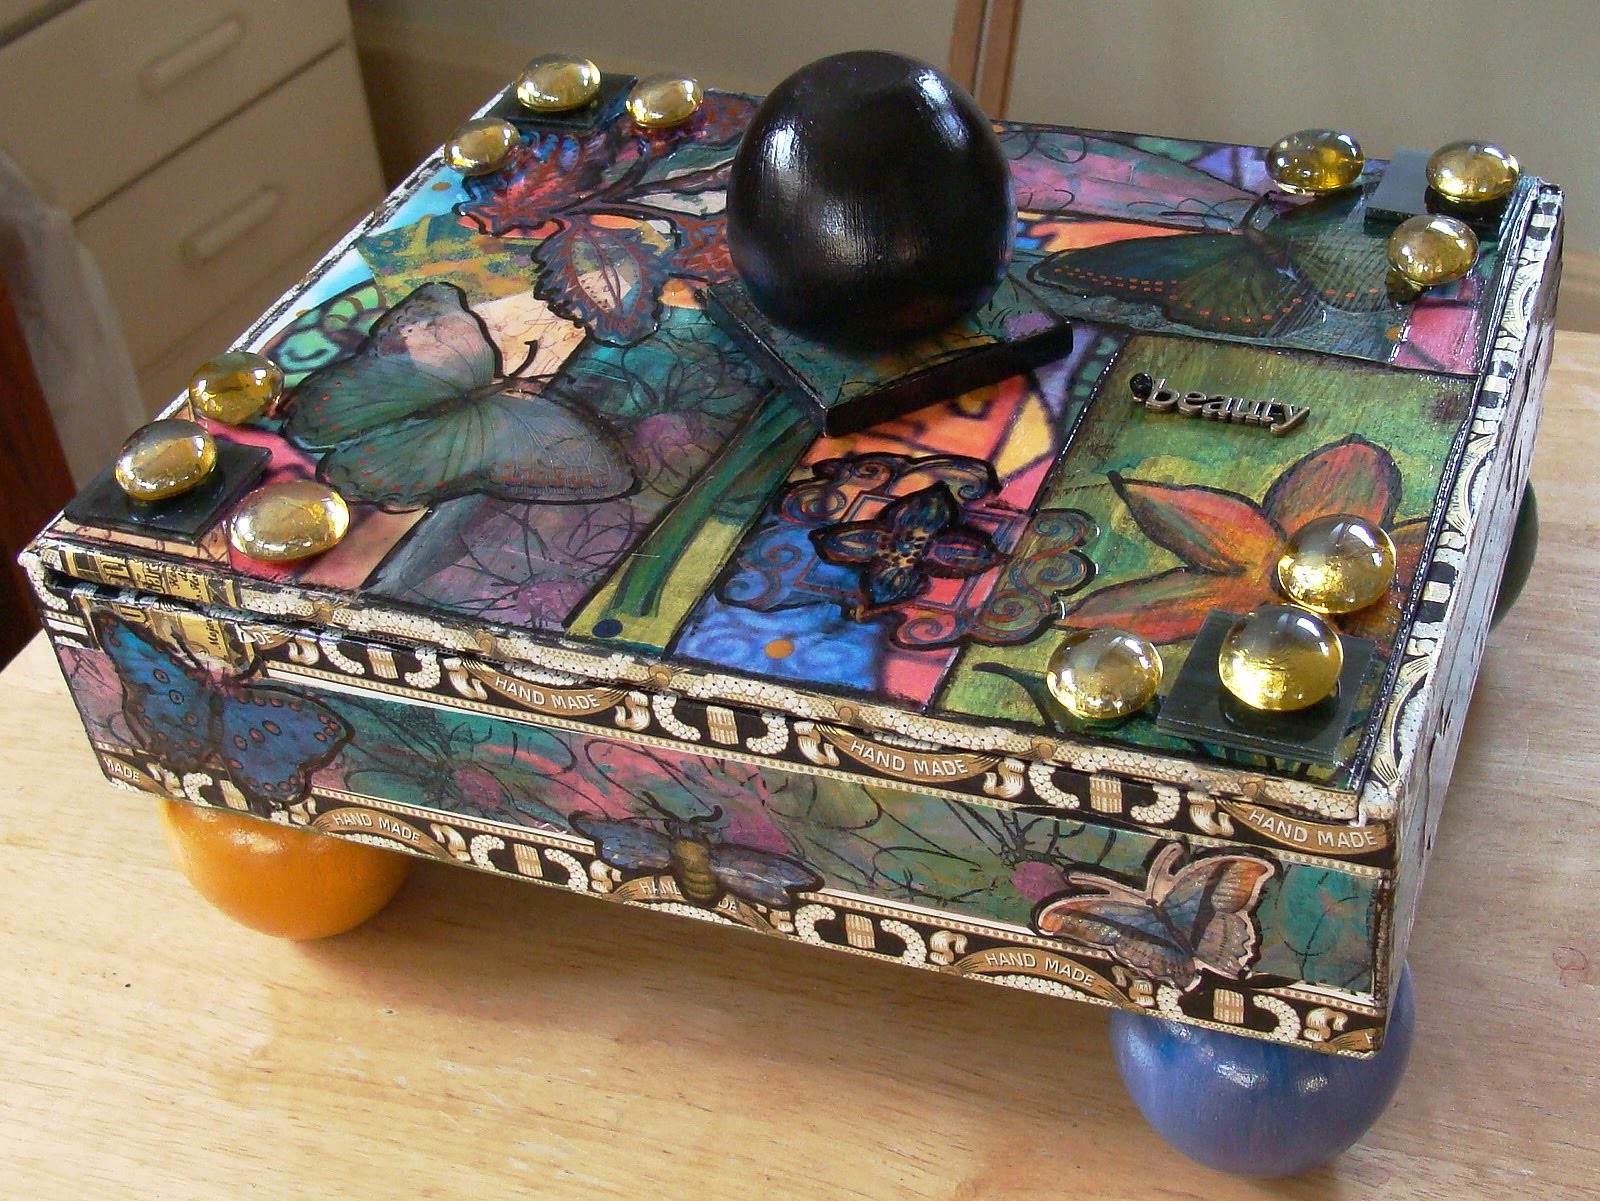 Best ideas about Cigar Box Craft Ideas . Save or Pin My Art Journal Fun With Cigar Boxes Now.